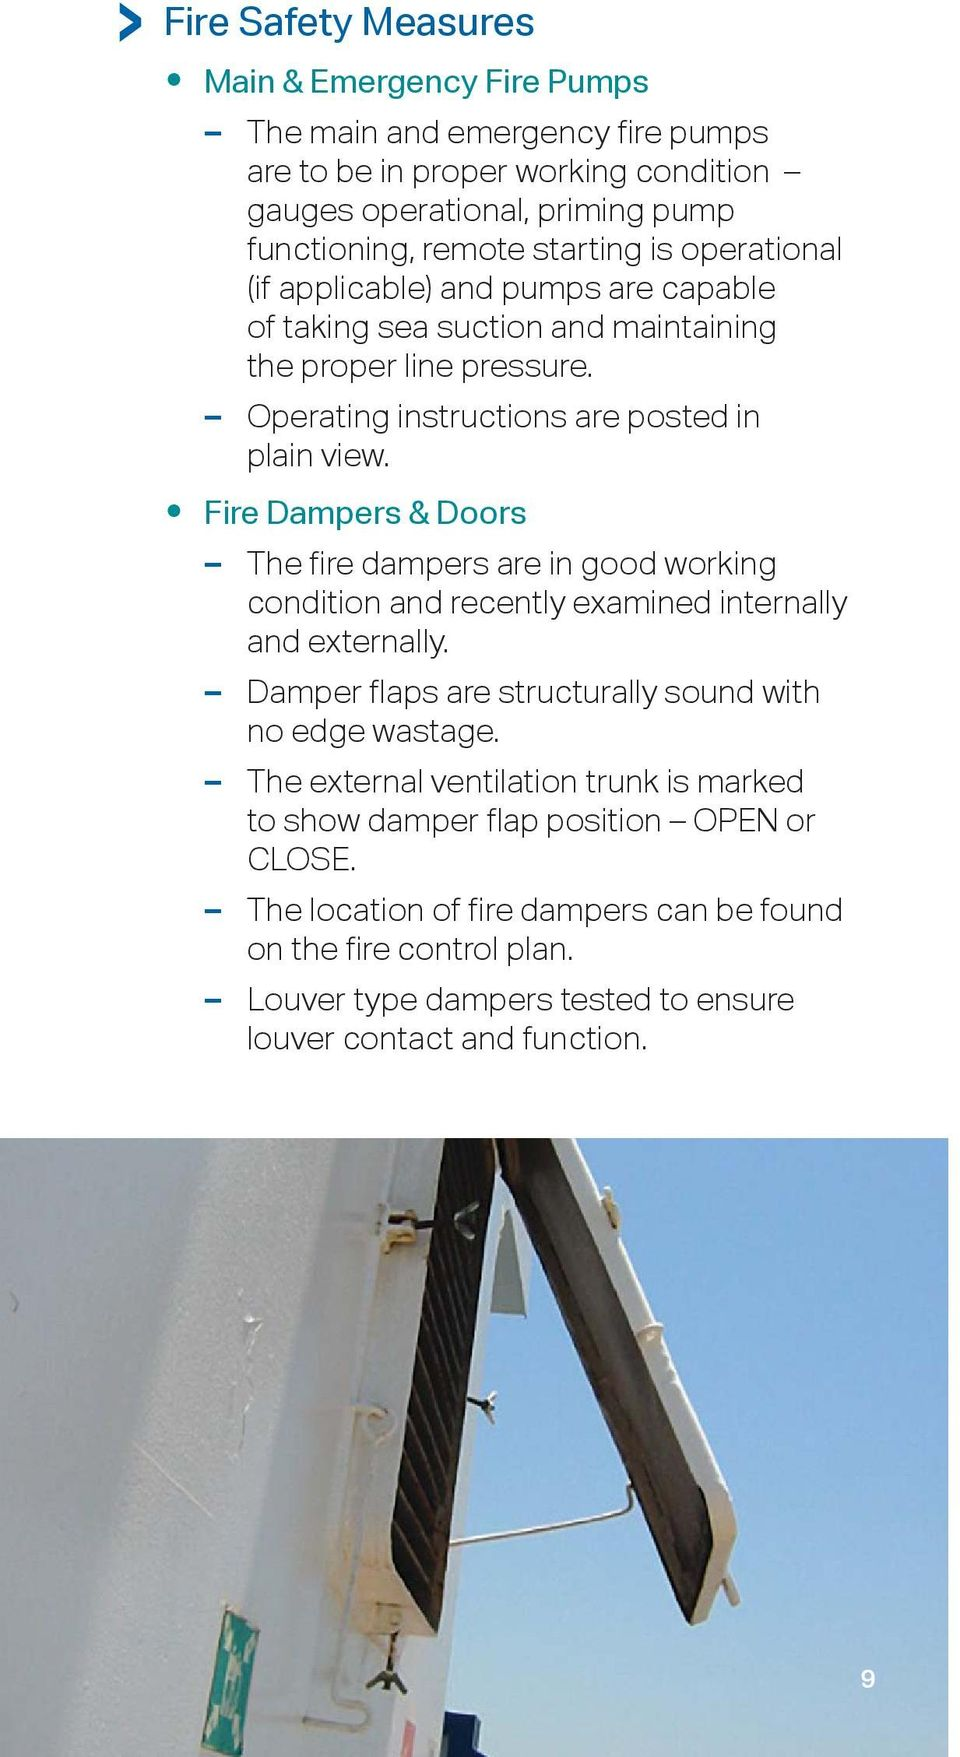 Fire Dampers & Doors The fire dampers are in good working condition and recently examined internally and externally. Damper flaps are structurally sound with no edge wastage.